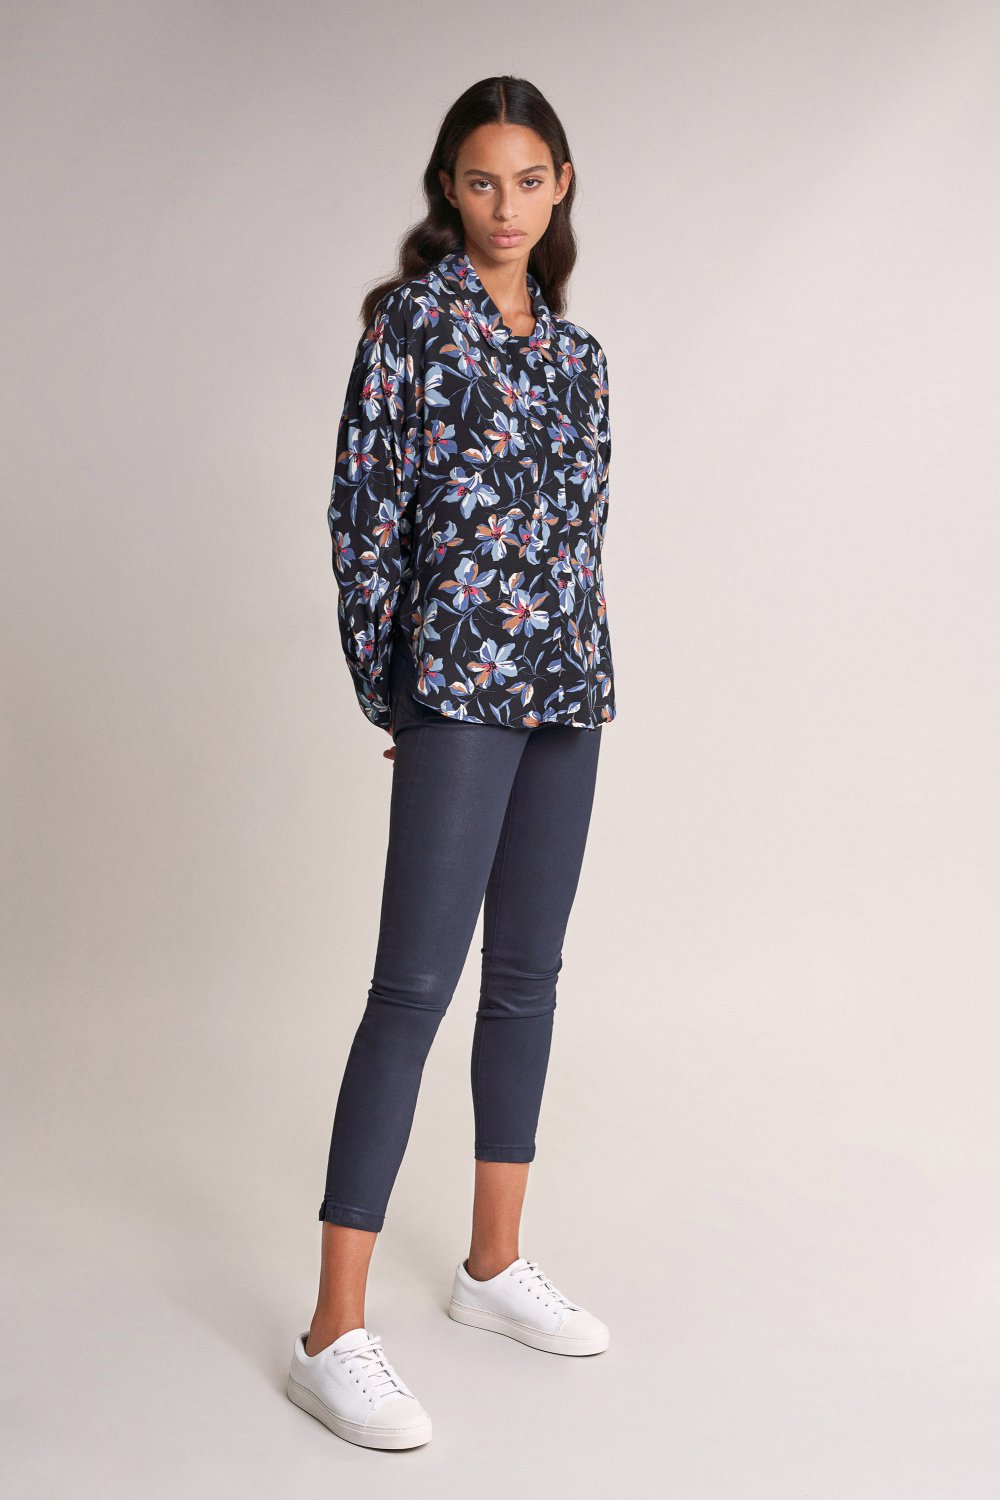 Tunic with floral print - Salsa